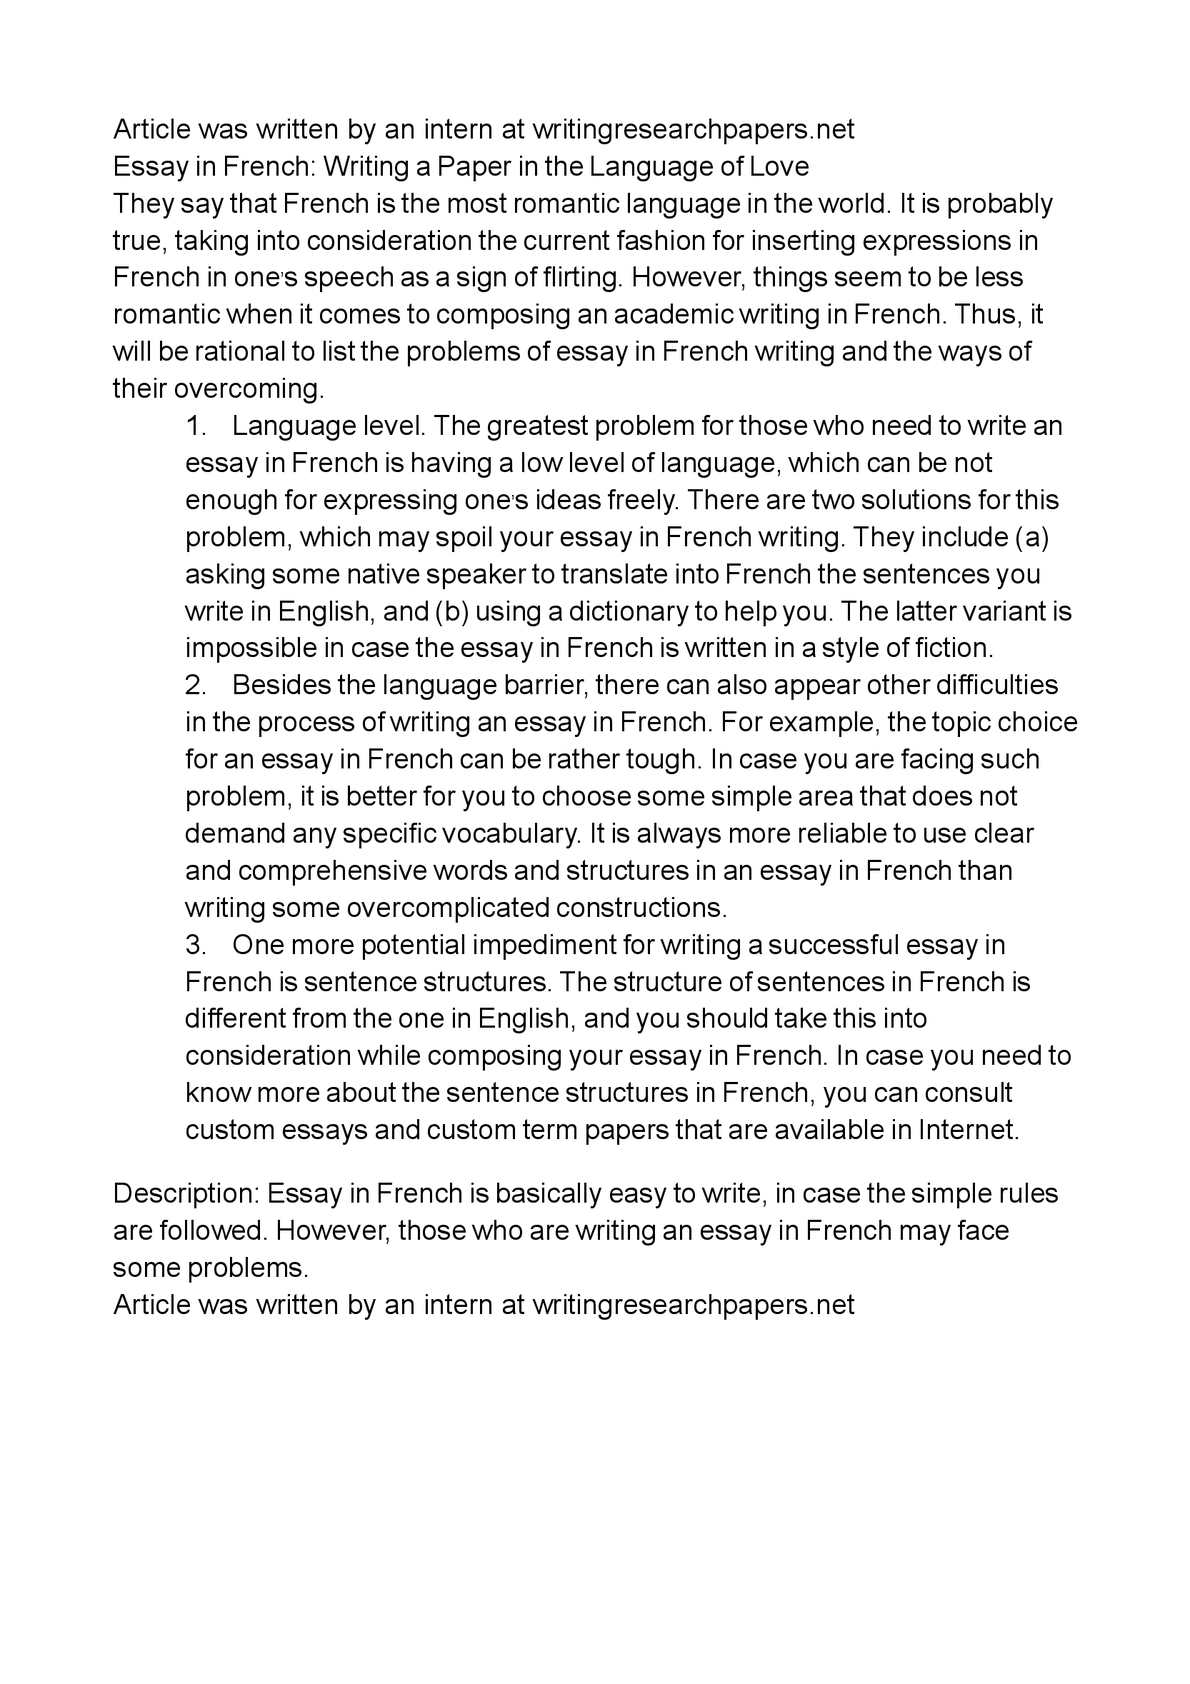 Essay Writing Process French Essay Writing Vocabulary French Essay Writing Phrases Pay Us To Write  Your Assignment Sipyaeshwork The Check If Your Essay Is Plagiarized also Why Education Is Important Essay French Essay Writing French Essay Writing Vocabulary La Haine Essay  Essay About The Holocaust